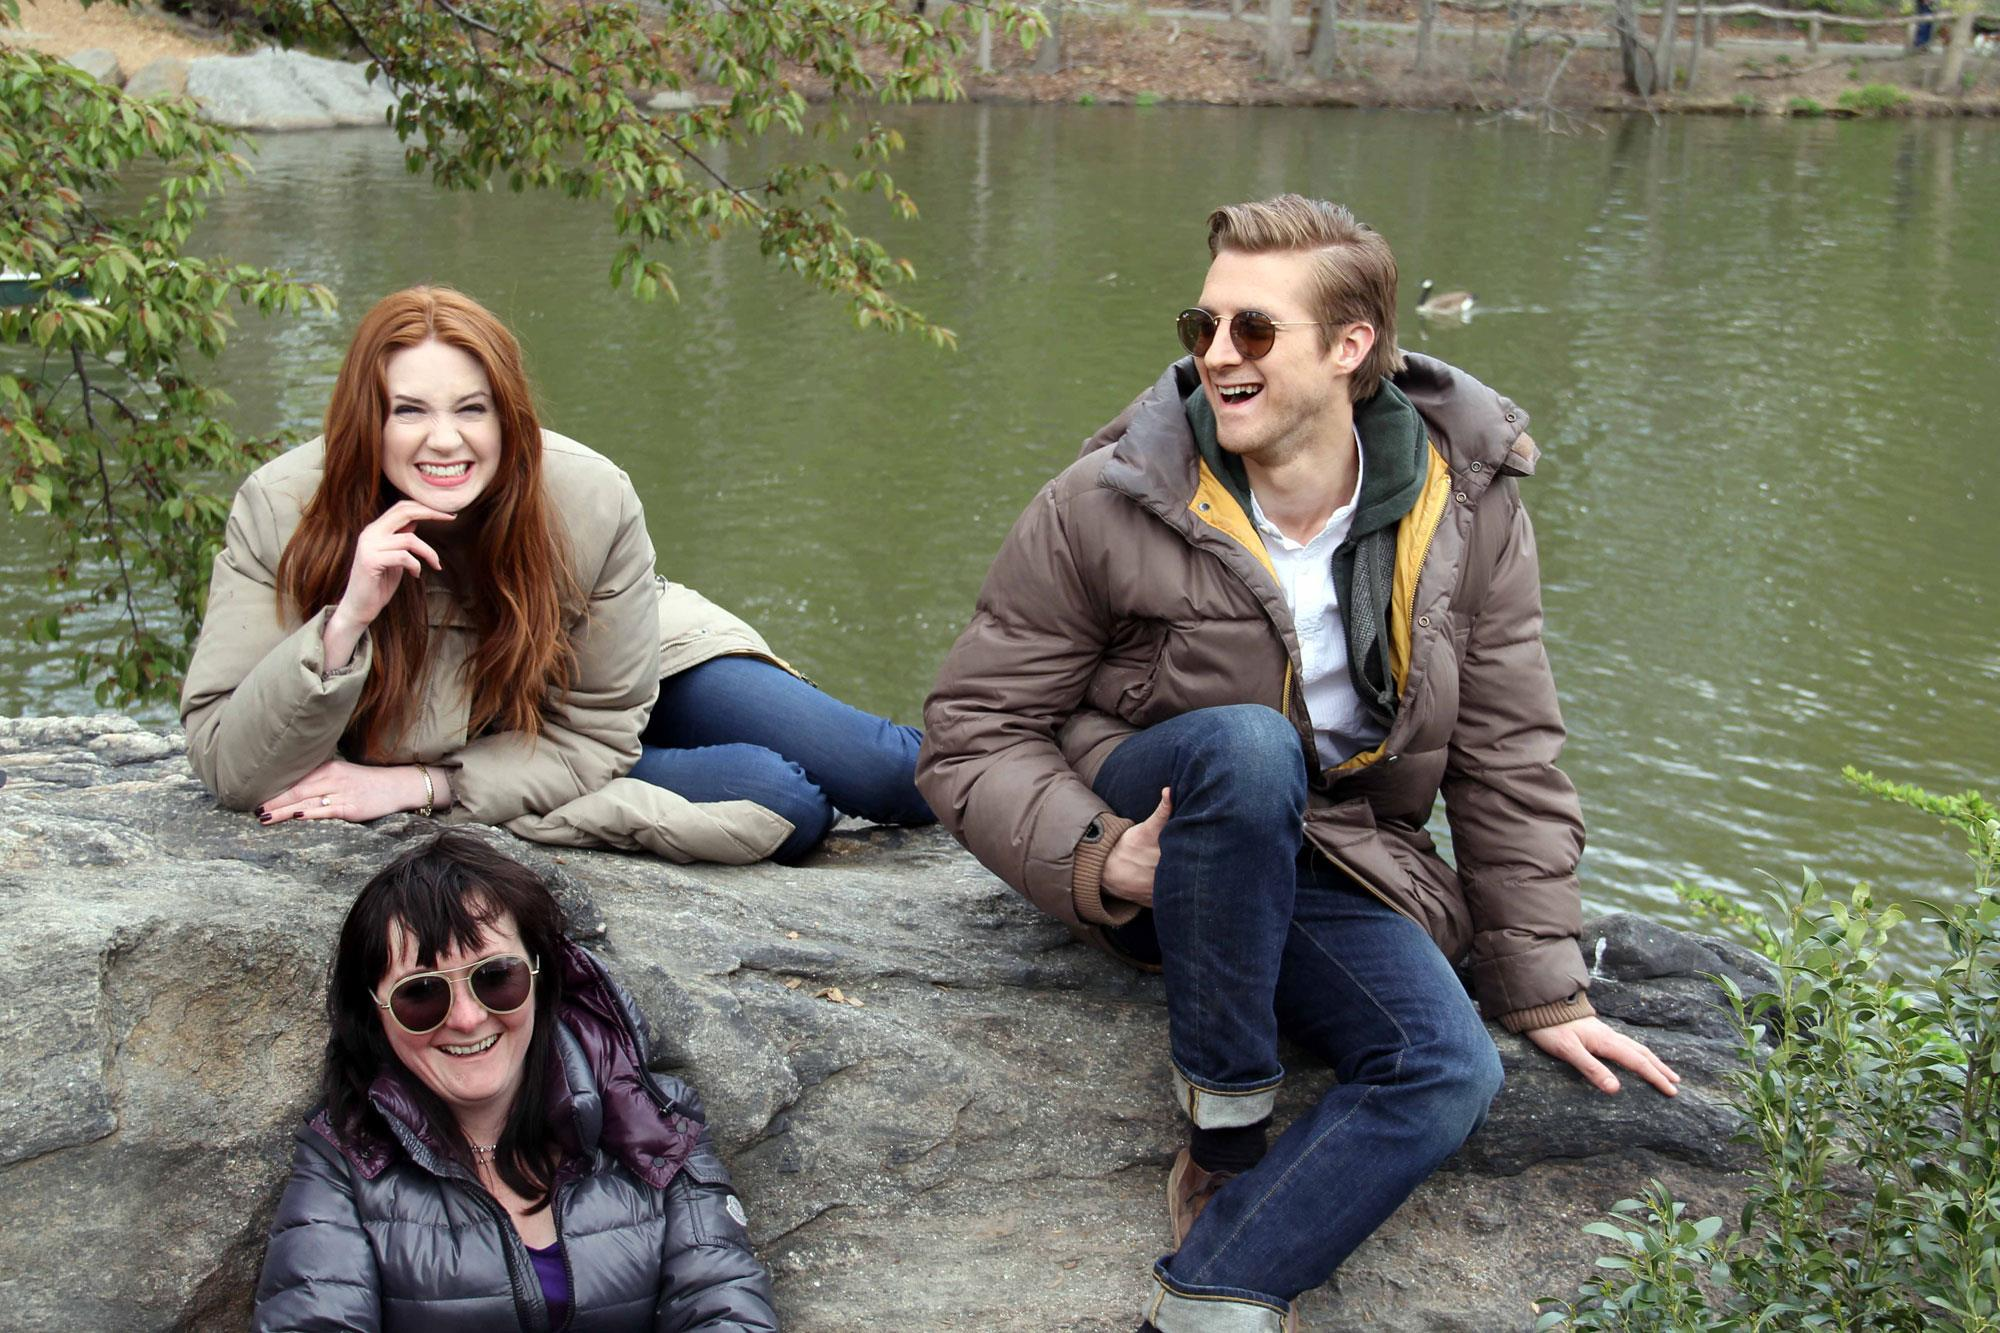 Karen Gillan, Arthur Darvill and Caroline Skinner take a rest in Central Park while filming for an upcoming 'Doctor Who' episode in New York City.